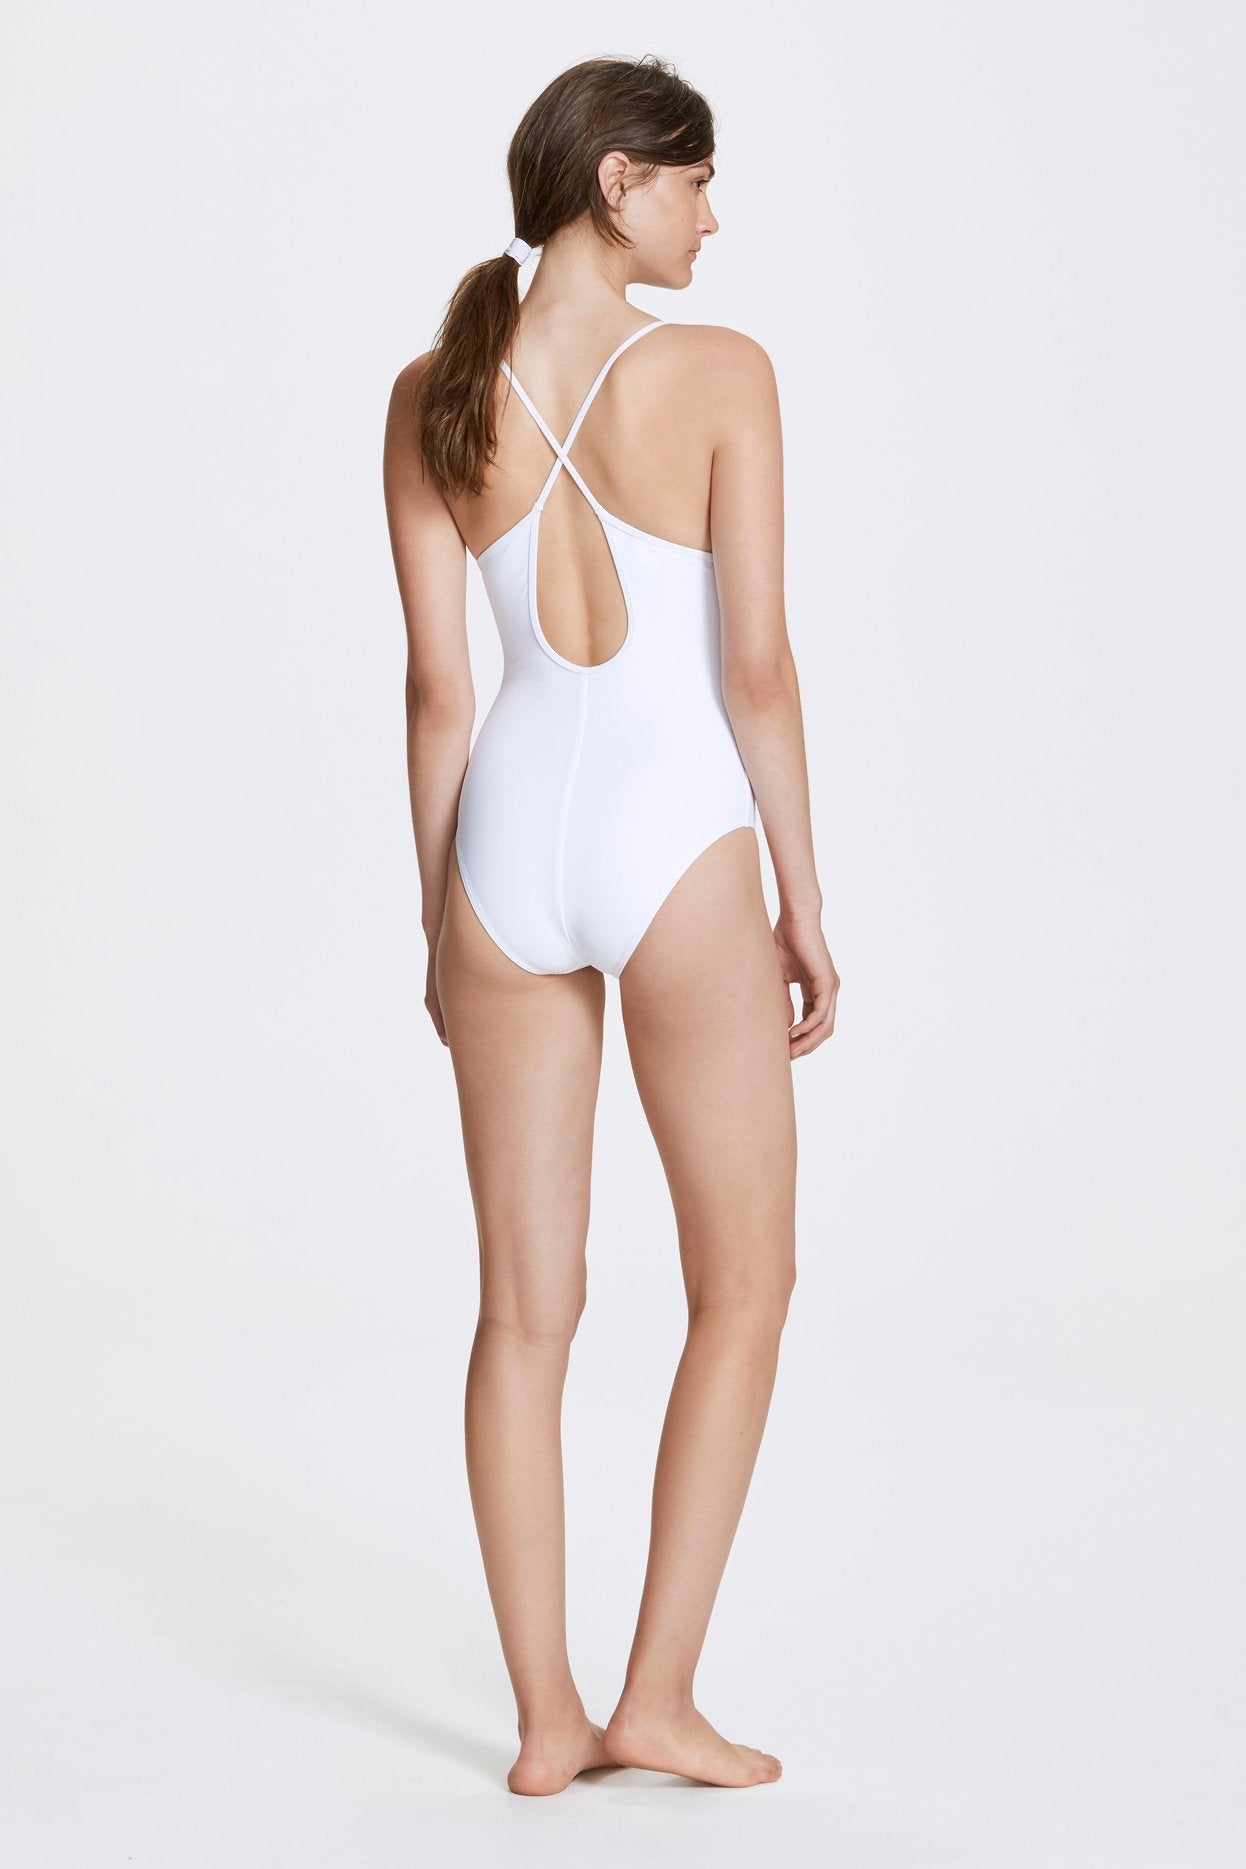 Her Line Dylan Swimwear One Piece Milk White Back